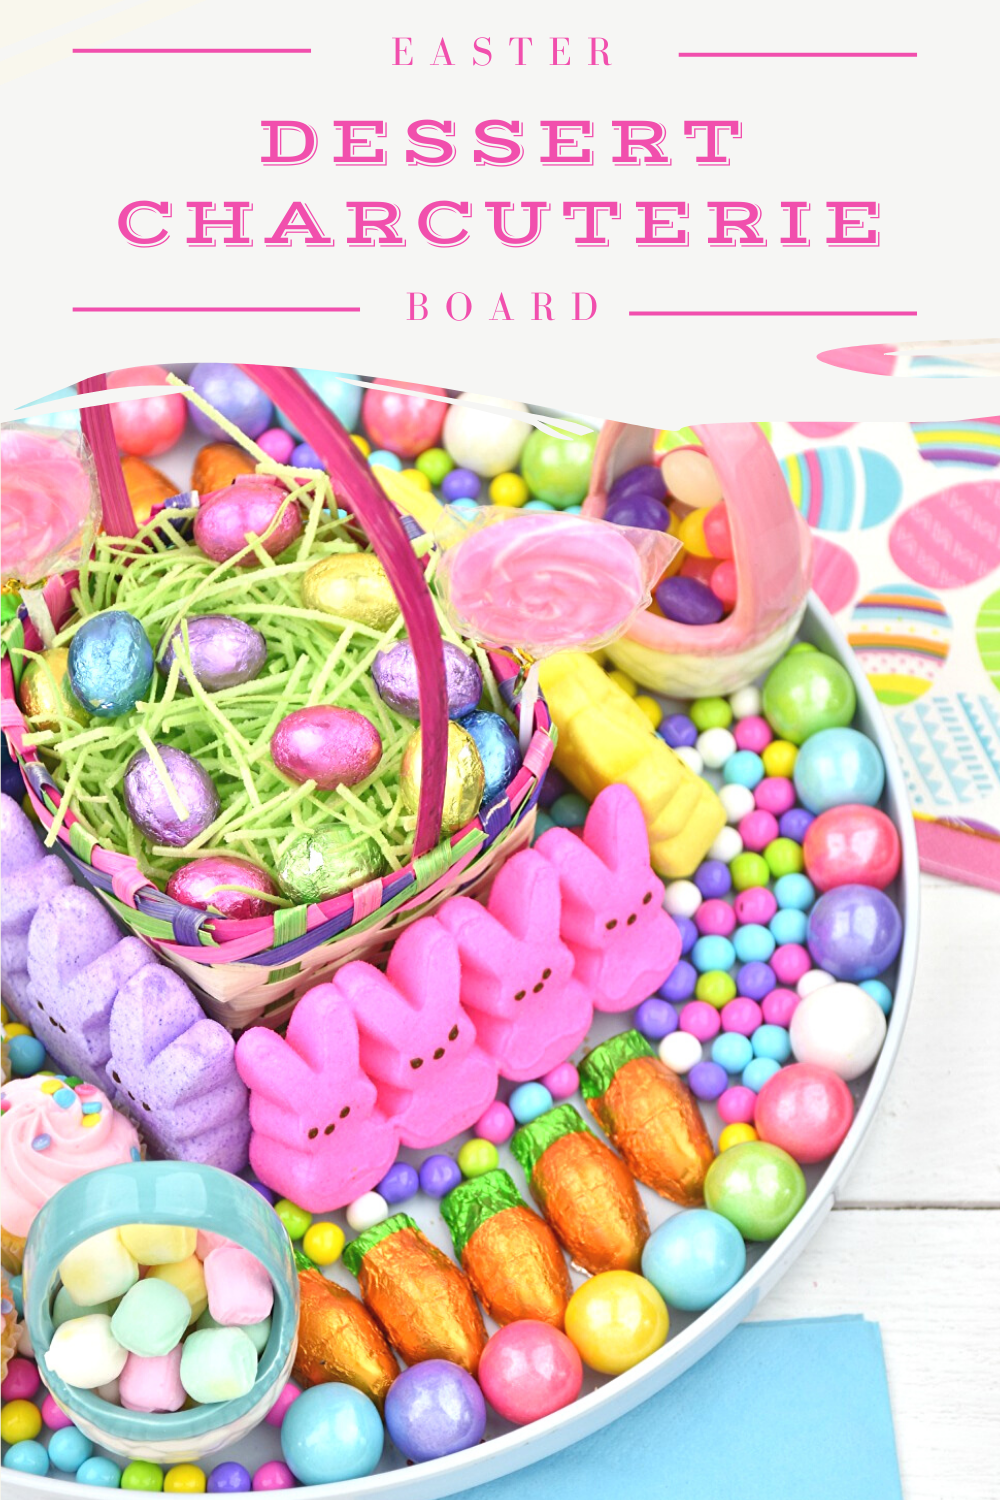 This bright and colorful Easter Dessert Charcuterie Board is one of my favorite dessert charcuterie boards to make! Filled with traditional Easter candies, this sweet Dessert Charcuterie Board for Easter has it all!